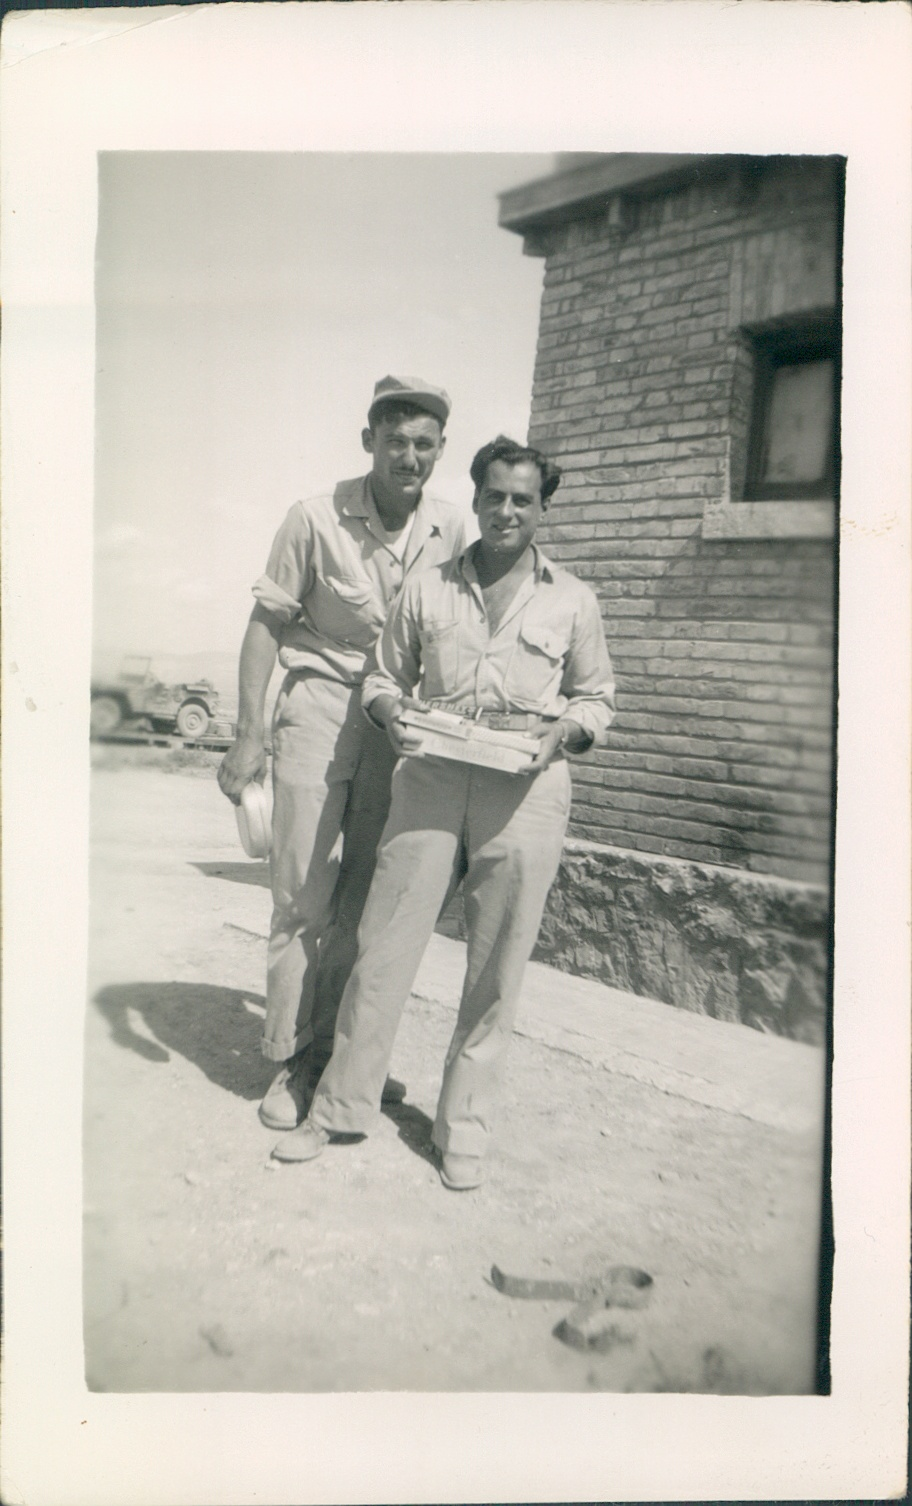 "September 1944 Italy Ration Day - cigarettes, candy, soap, etc, and tickets for 5 bottles of beer, and two cokes all for $1.60. The Guy behind me is the tallest in the sqdn. about 6'5"". - E. Carbone"